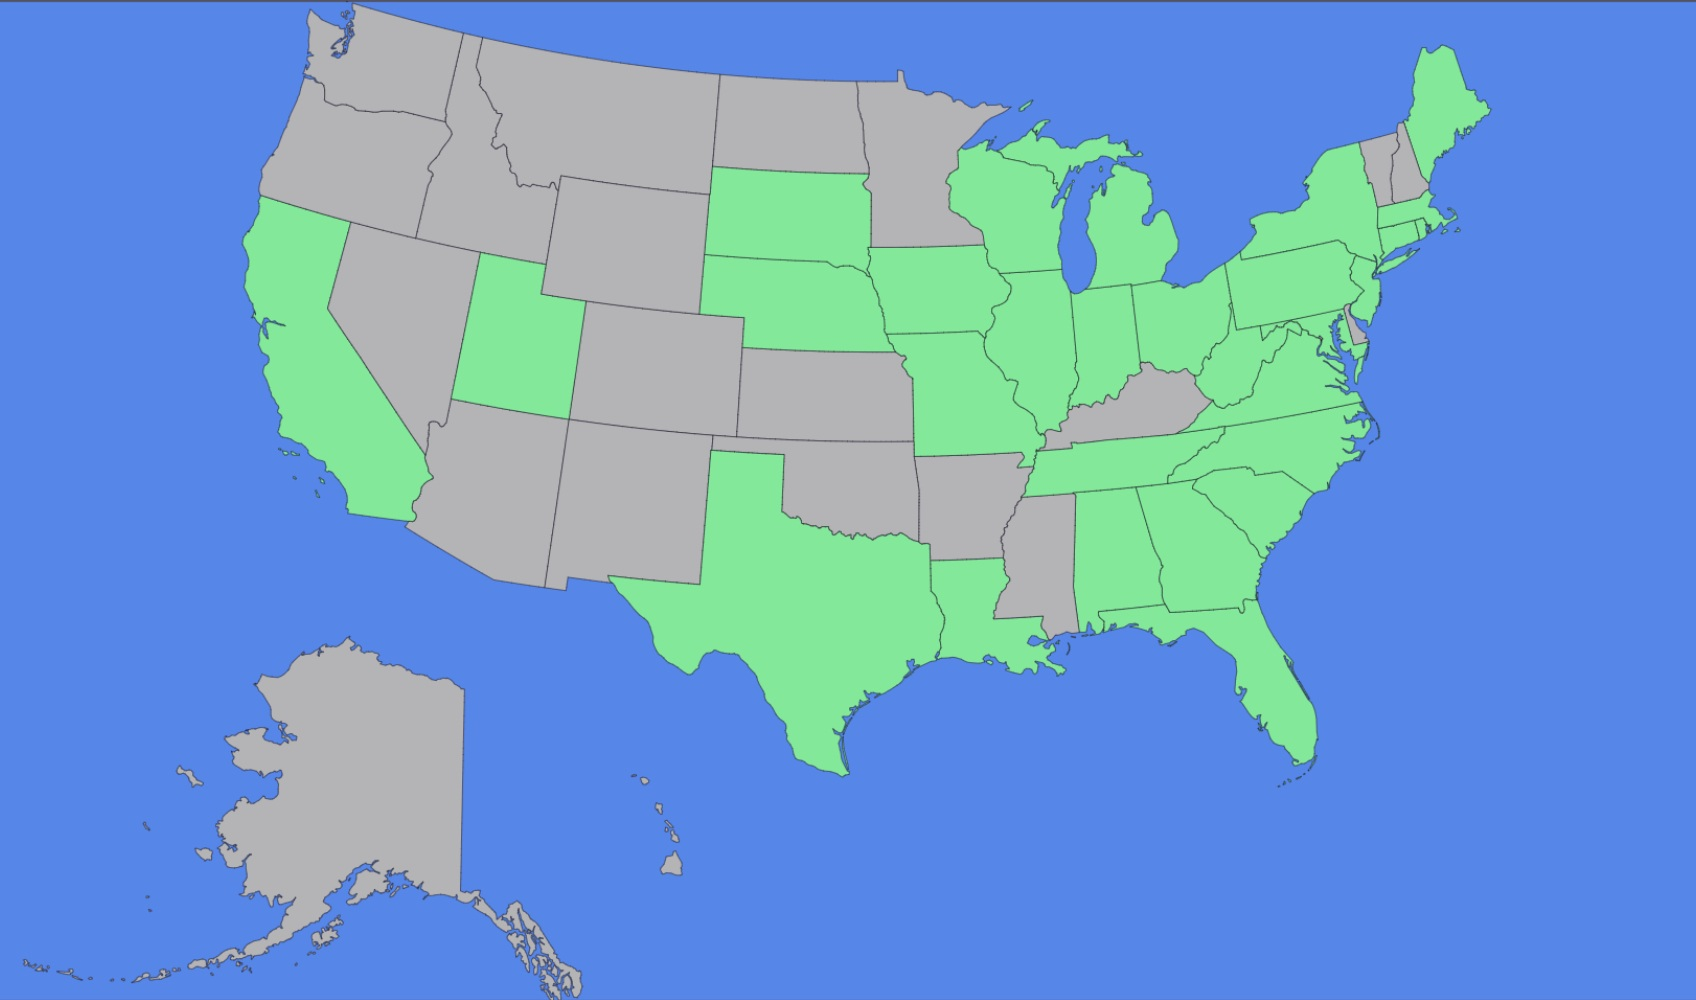 Are you in one of the grey states? Email us to get your bonus discount!